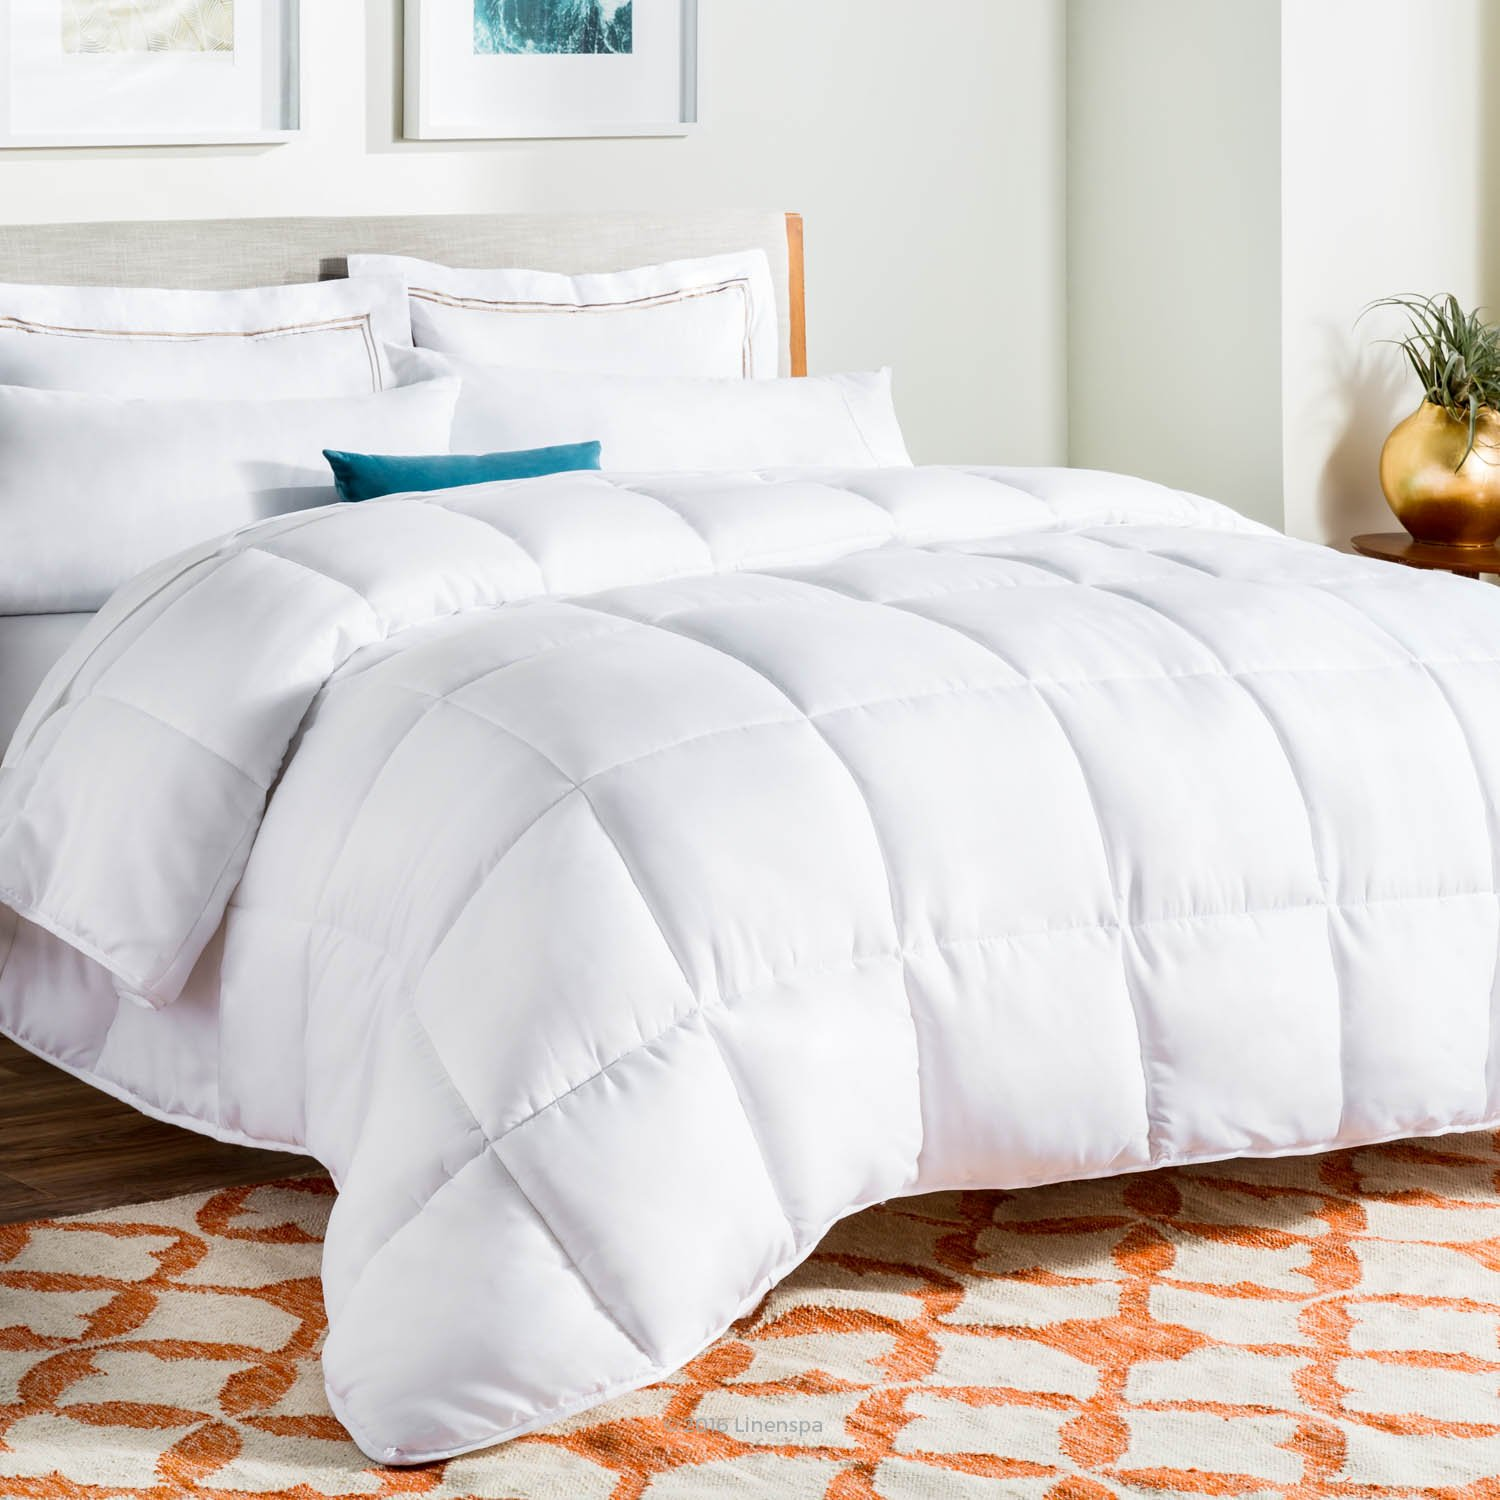 season list hayneedle comforters master all bath comforter by alternative superior bed down and solid bedroom